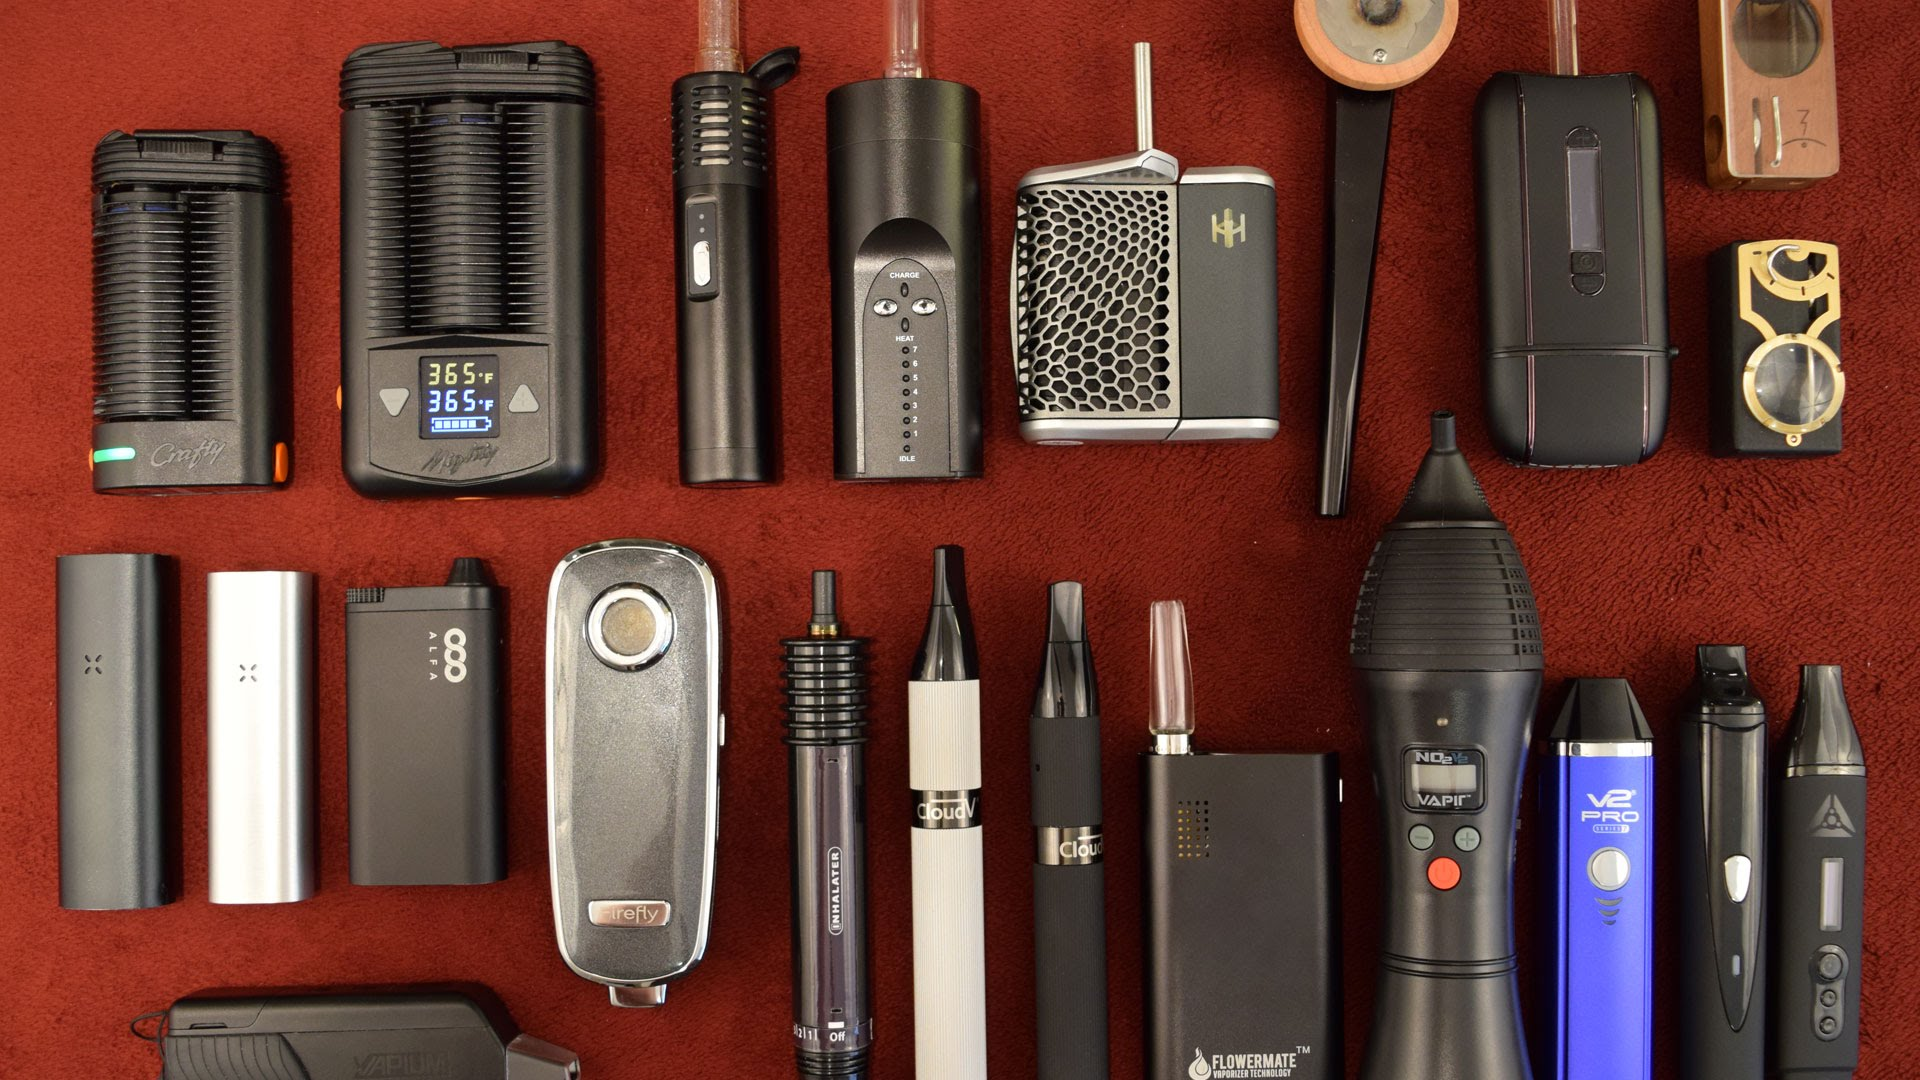 Why Choose Vaporizers?